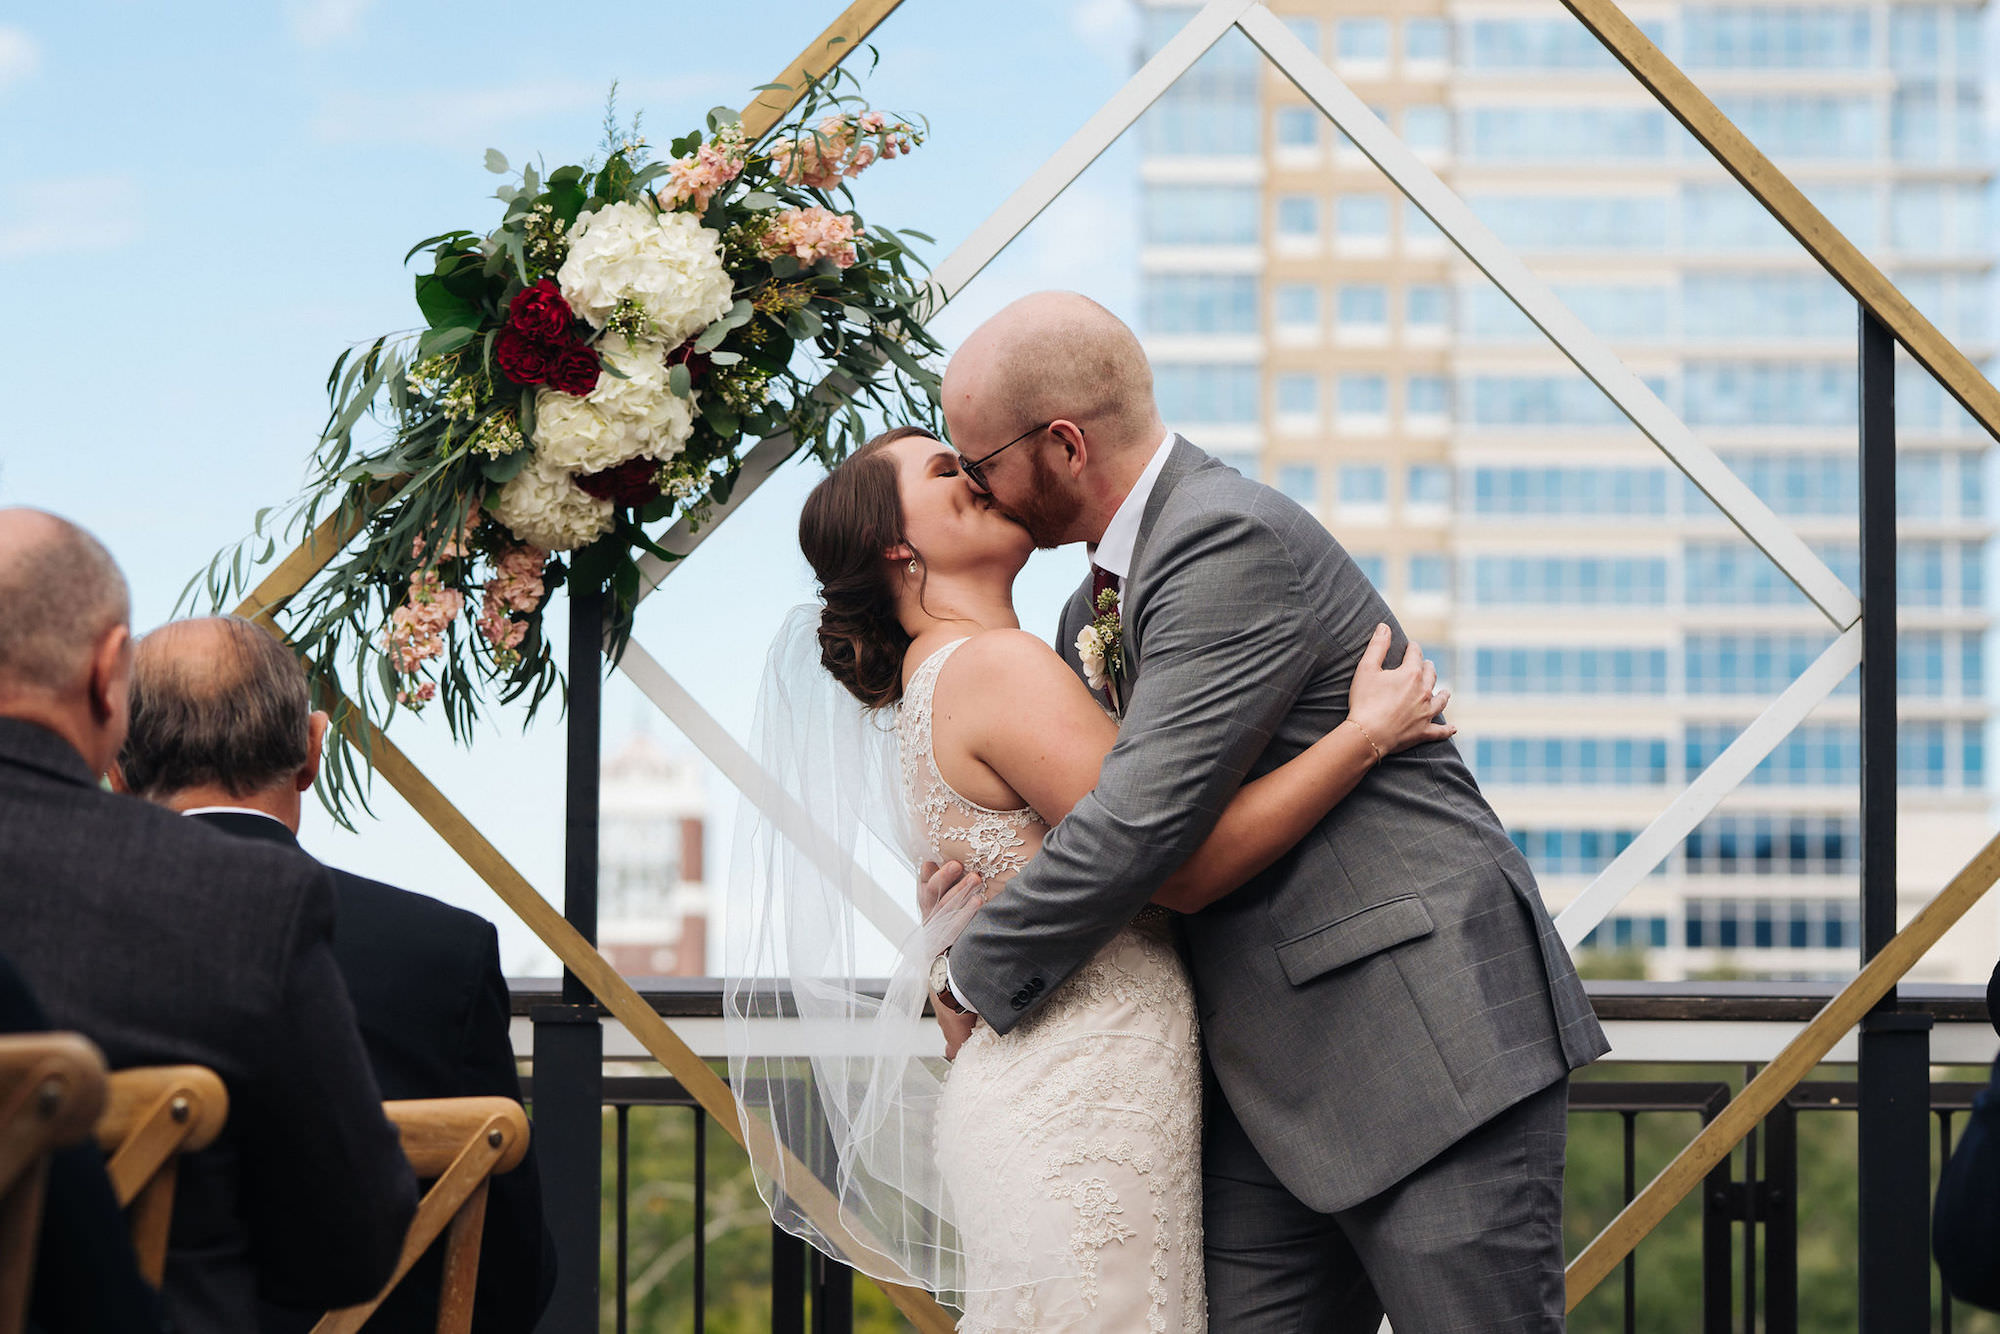 St. Petersburg Florida Wedding Venue   St. Pete Red Mesa Events   Rooftop Geometric Gold Ceremony Arch Backdrop   Lace Bridal Gown   Groom Grey Suit   First Kiss